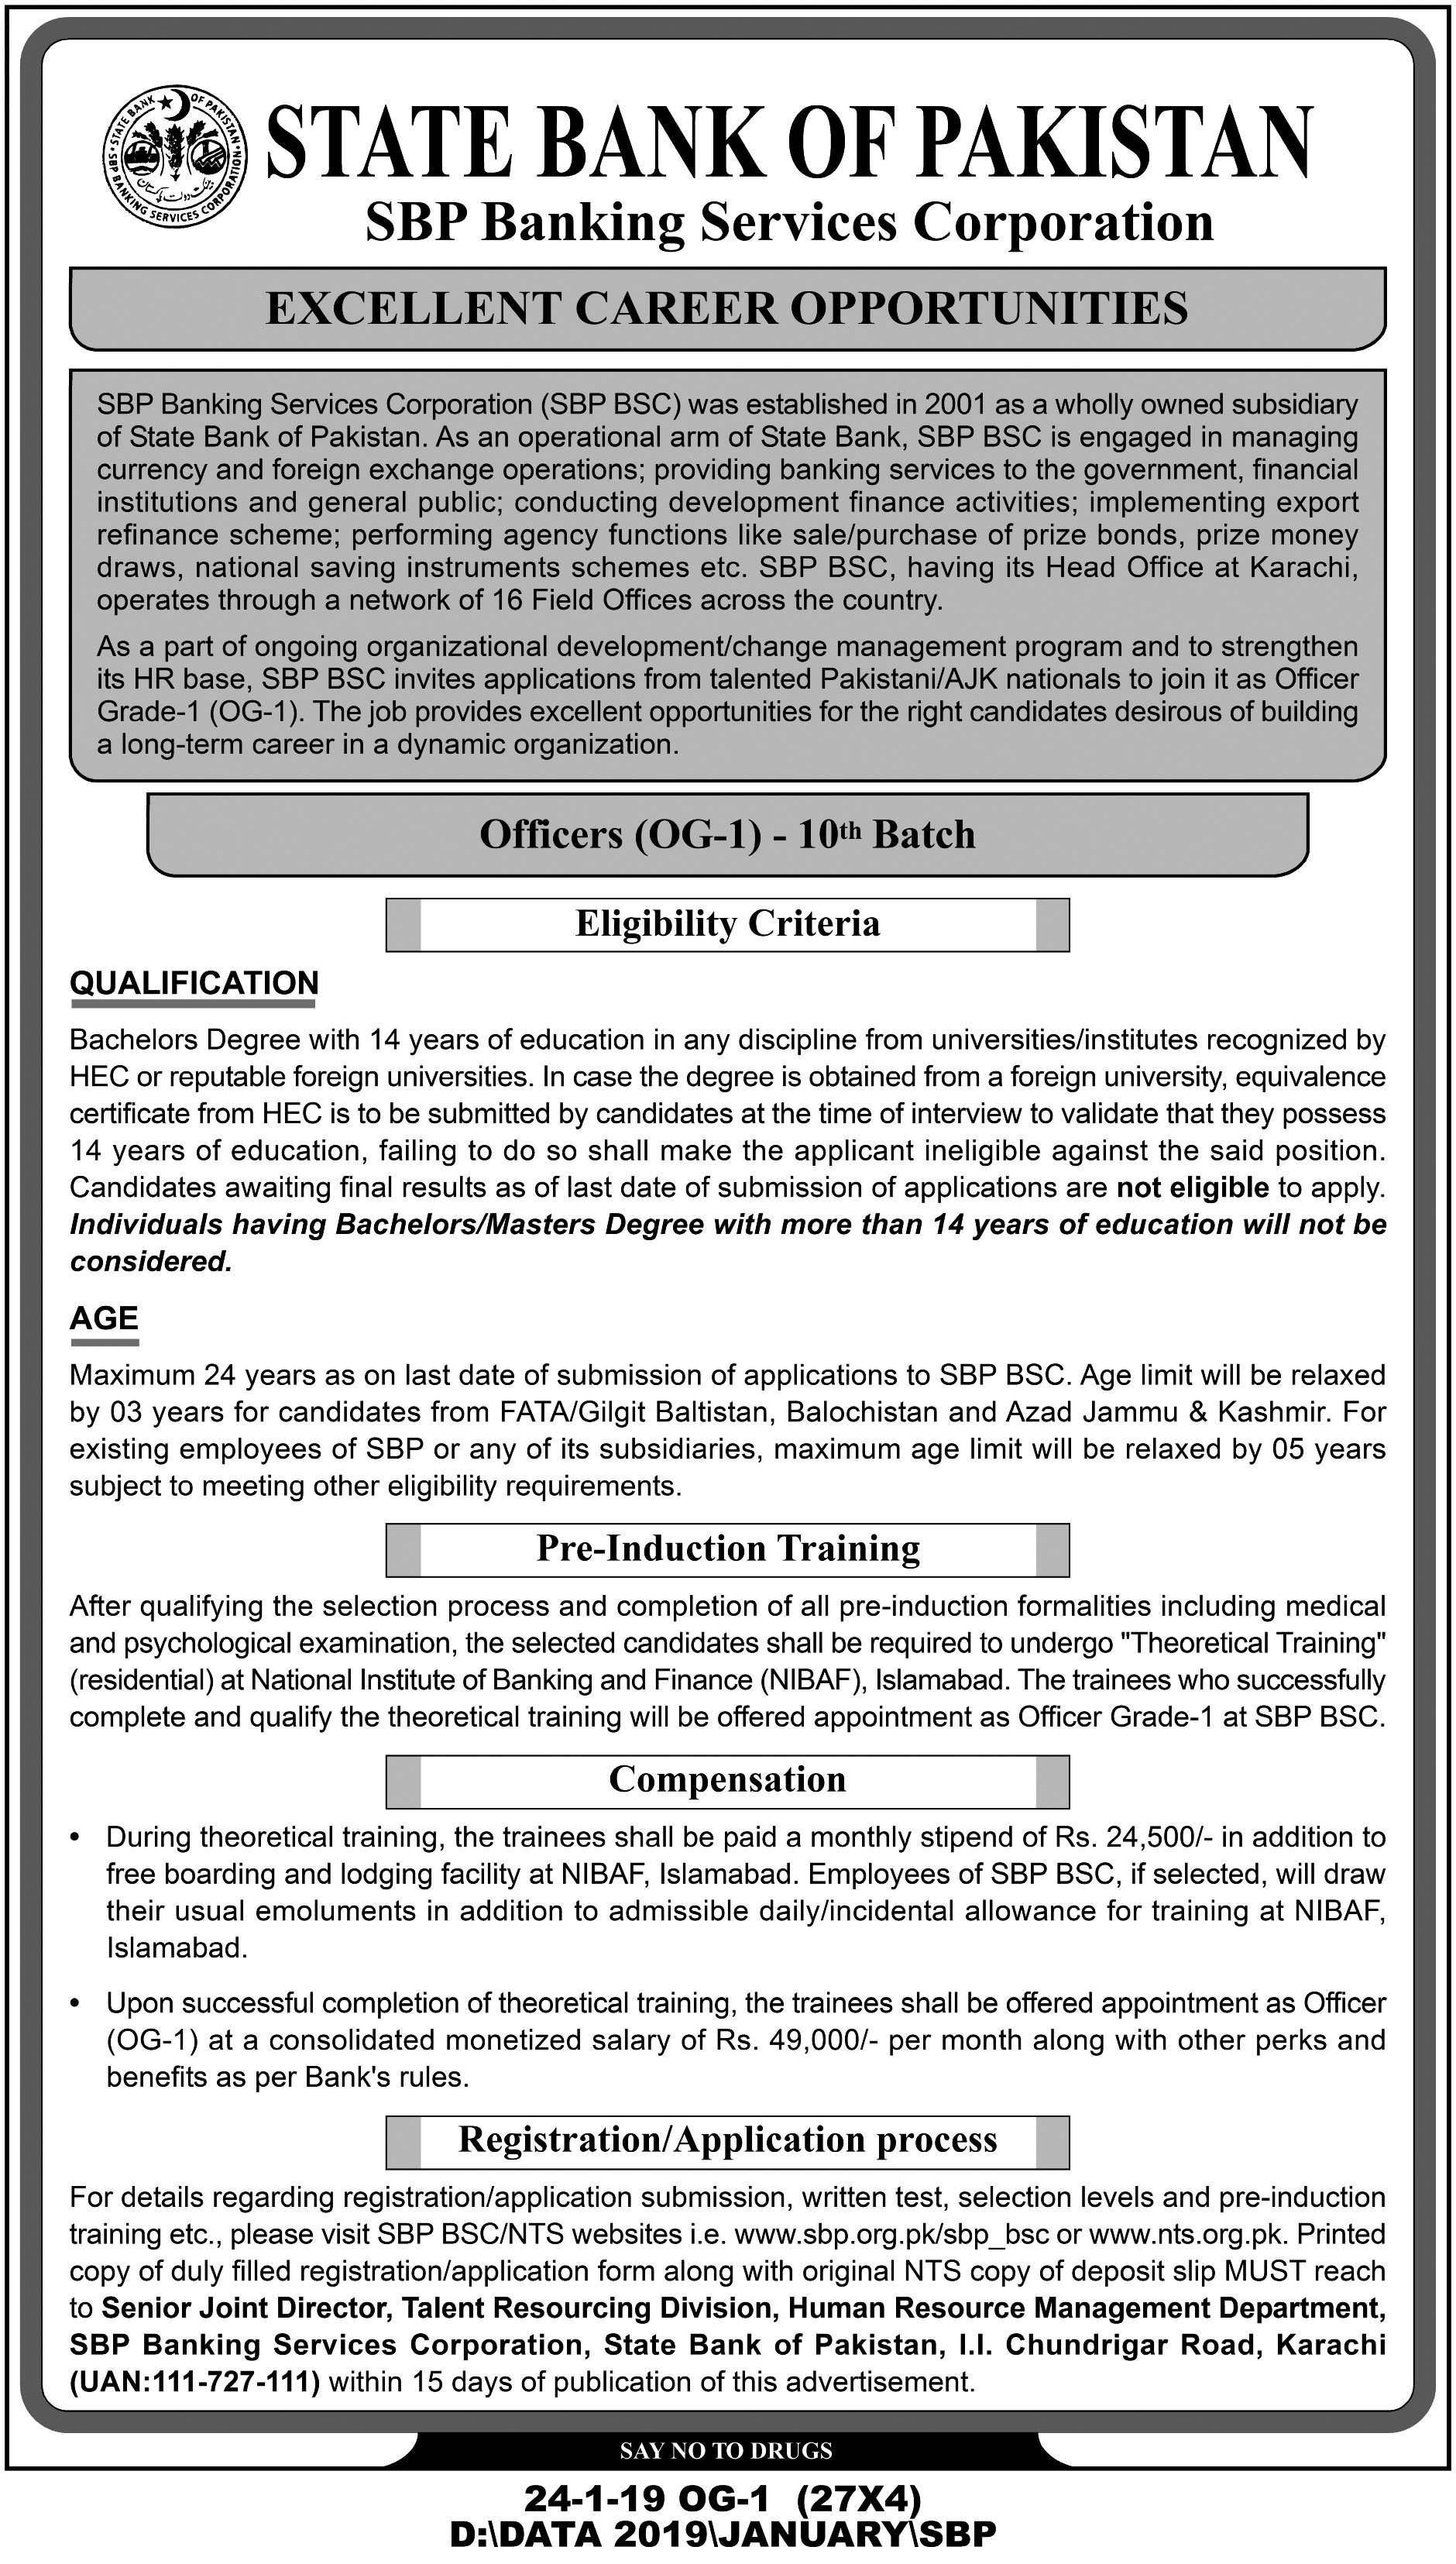 SBP Pakistan OG-1 Officers Jobs 2019 NTS Application Form Online